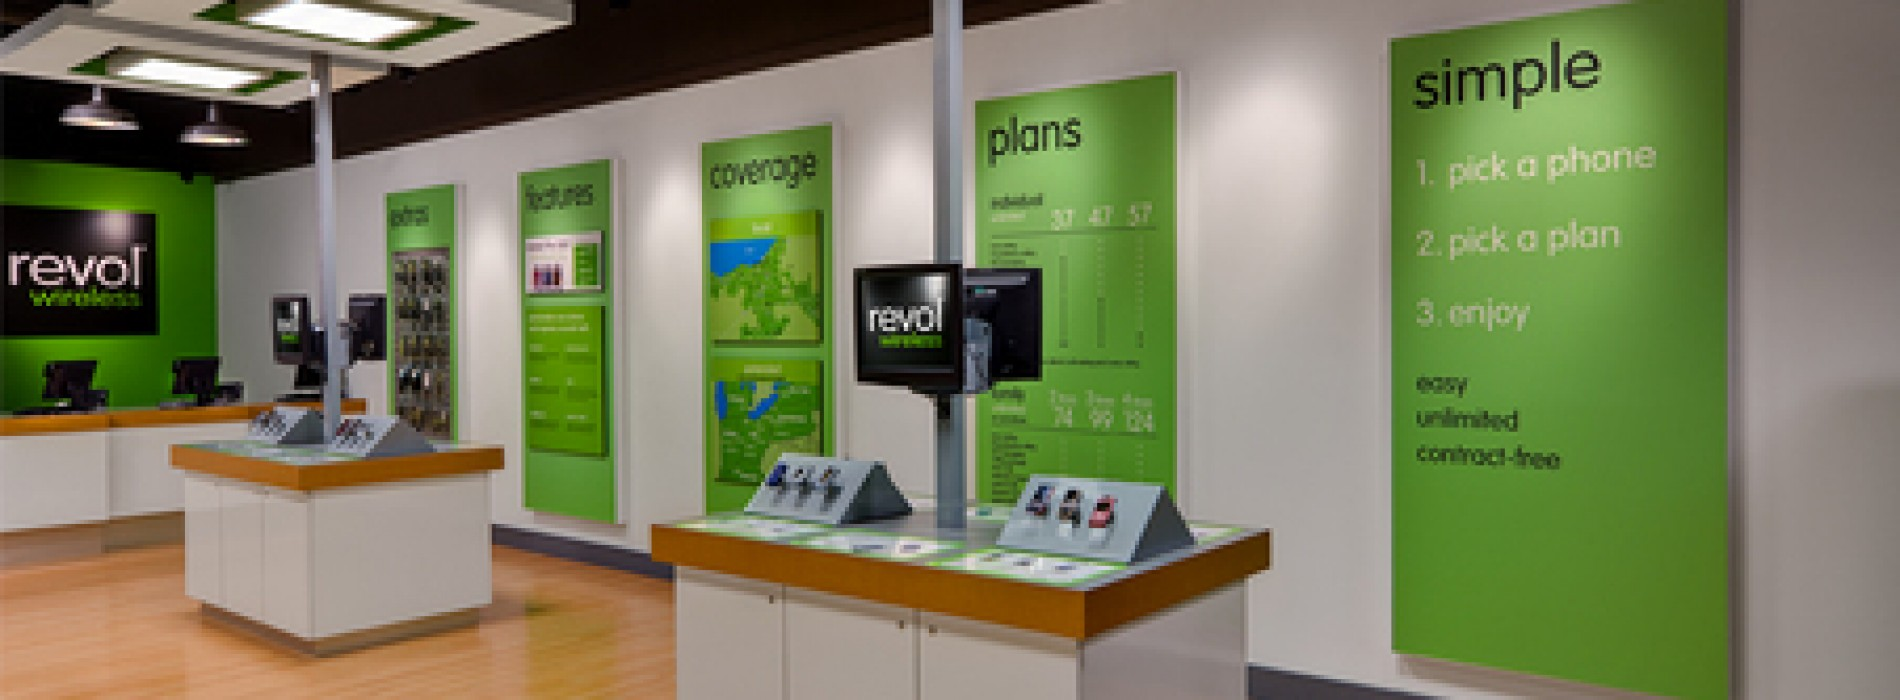 Revol Wireless hangs up on industry; Boost Mobile steps in for customers